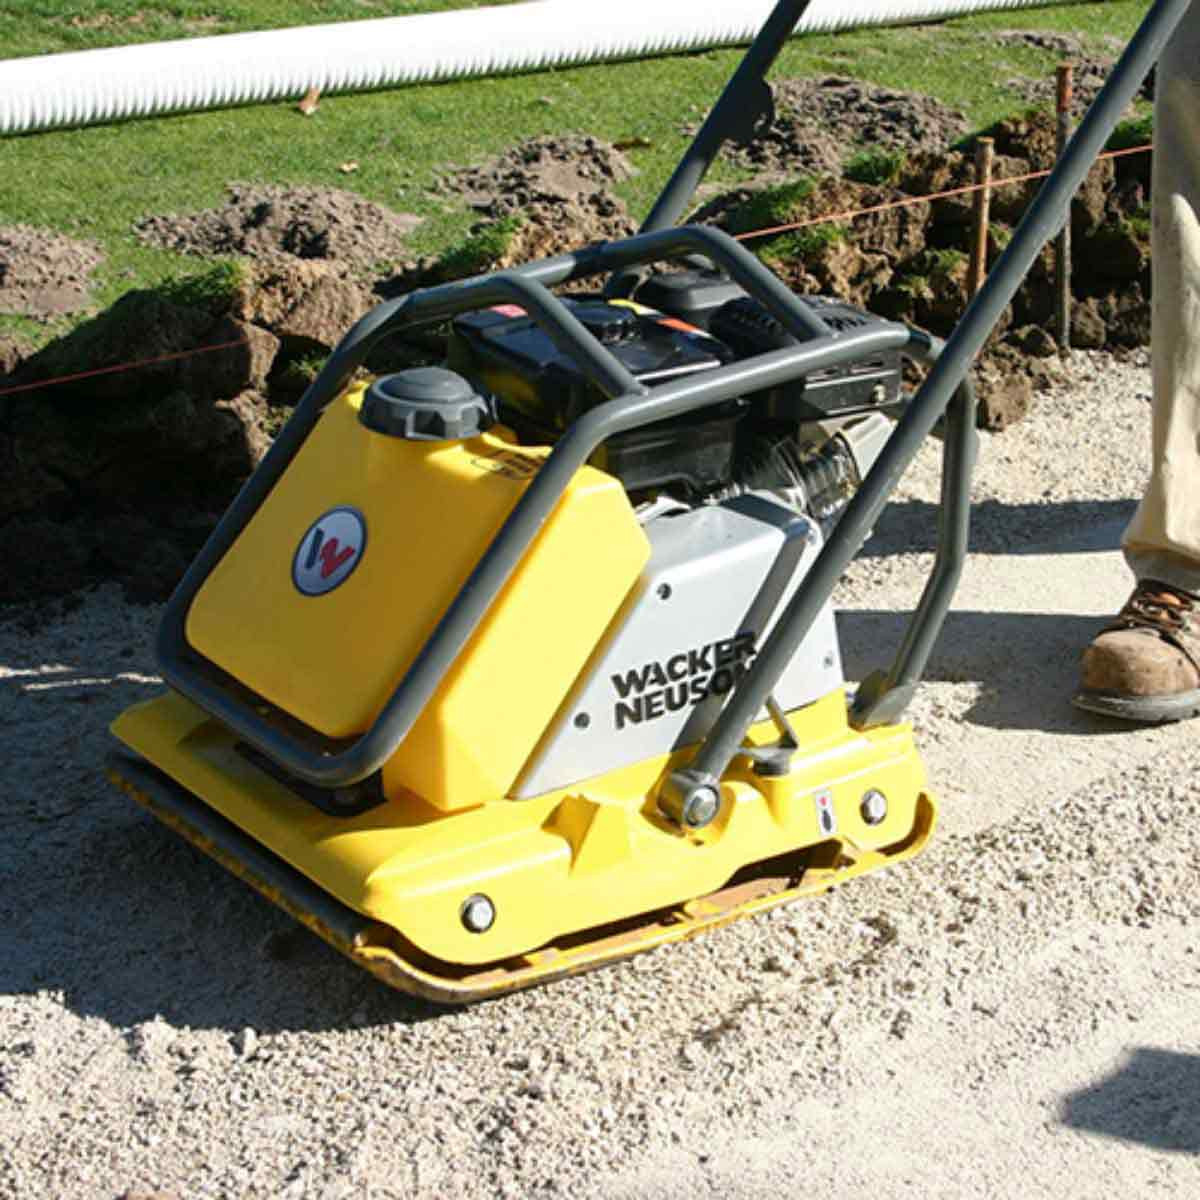 Vibratory plate soil compaction